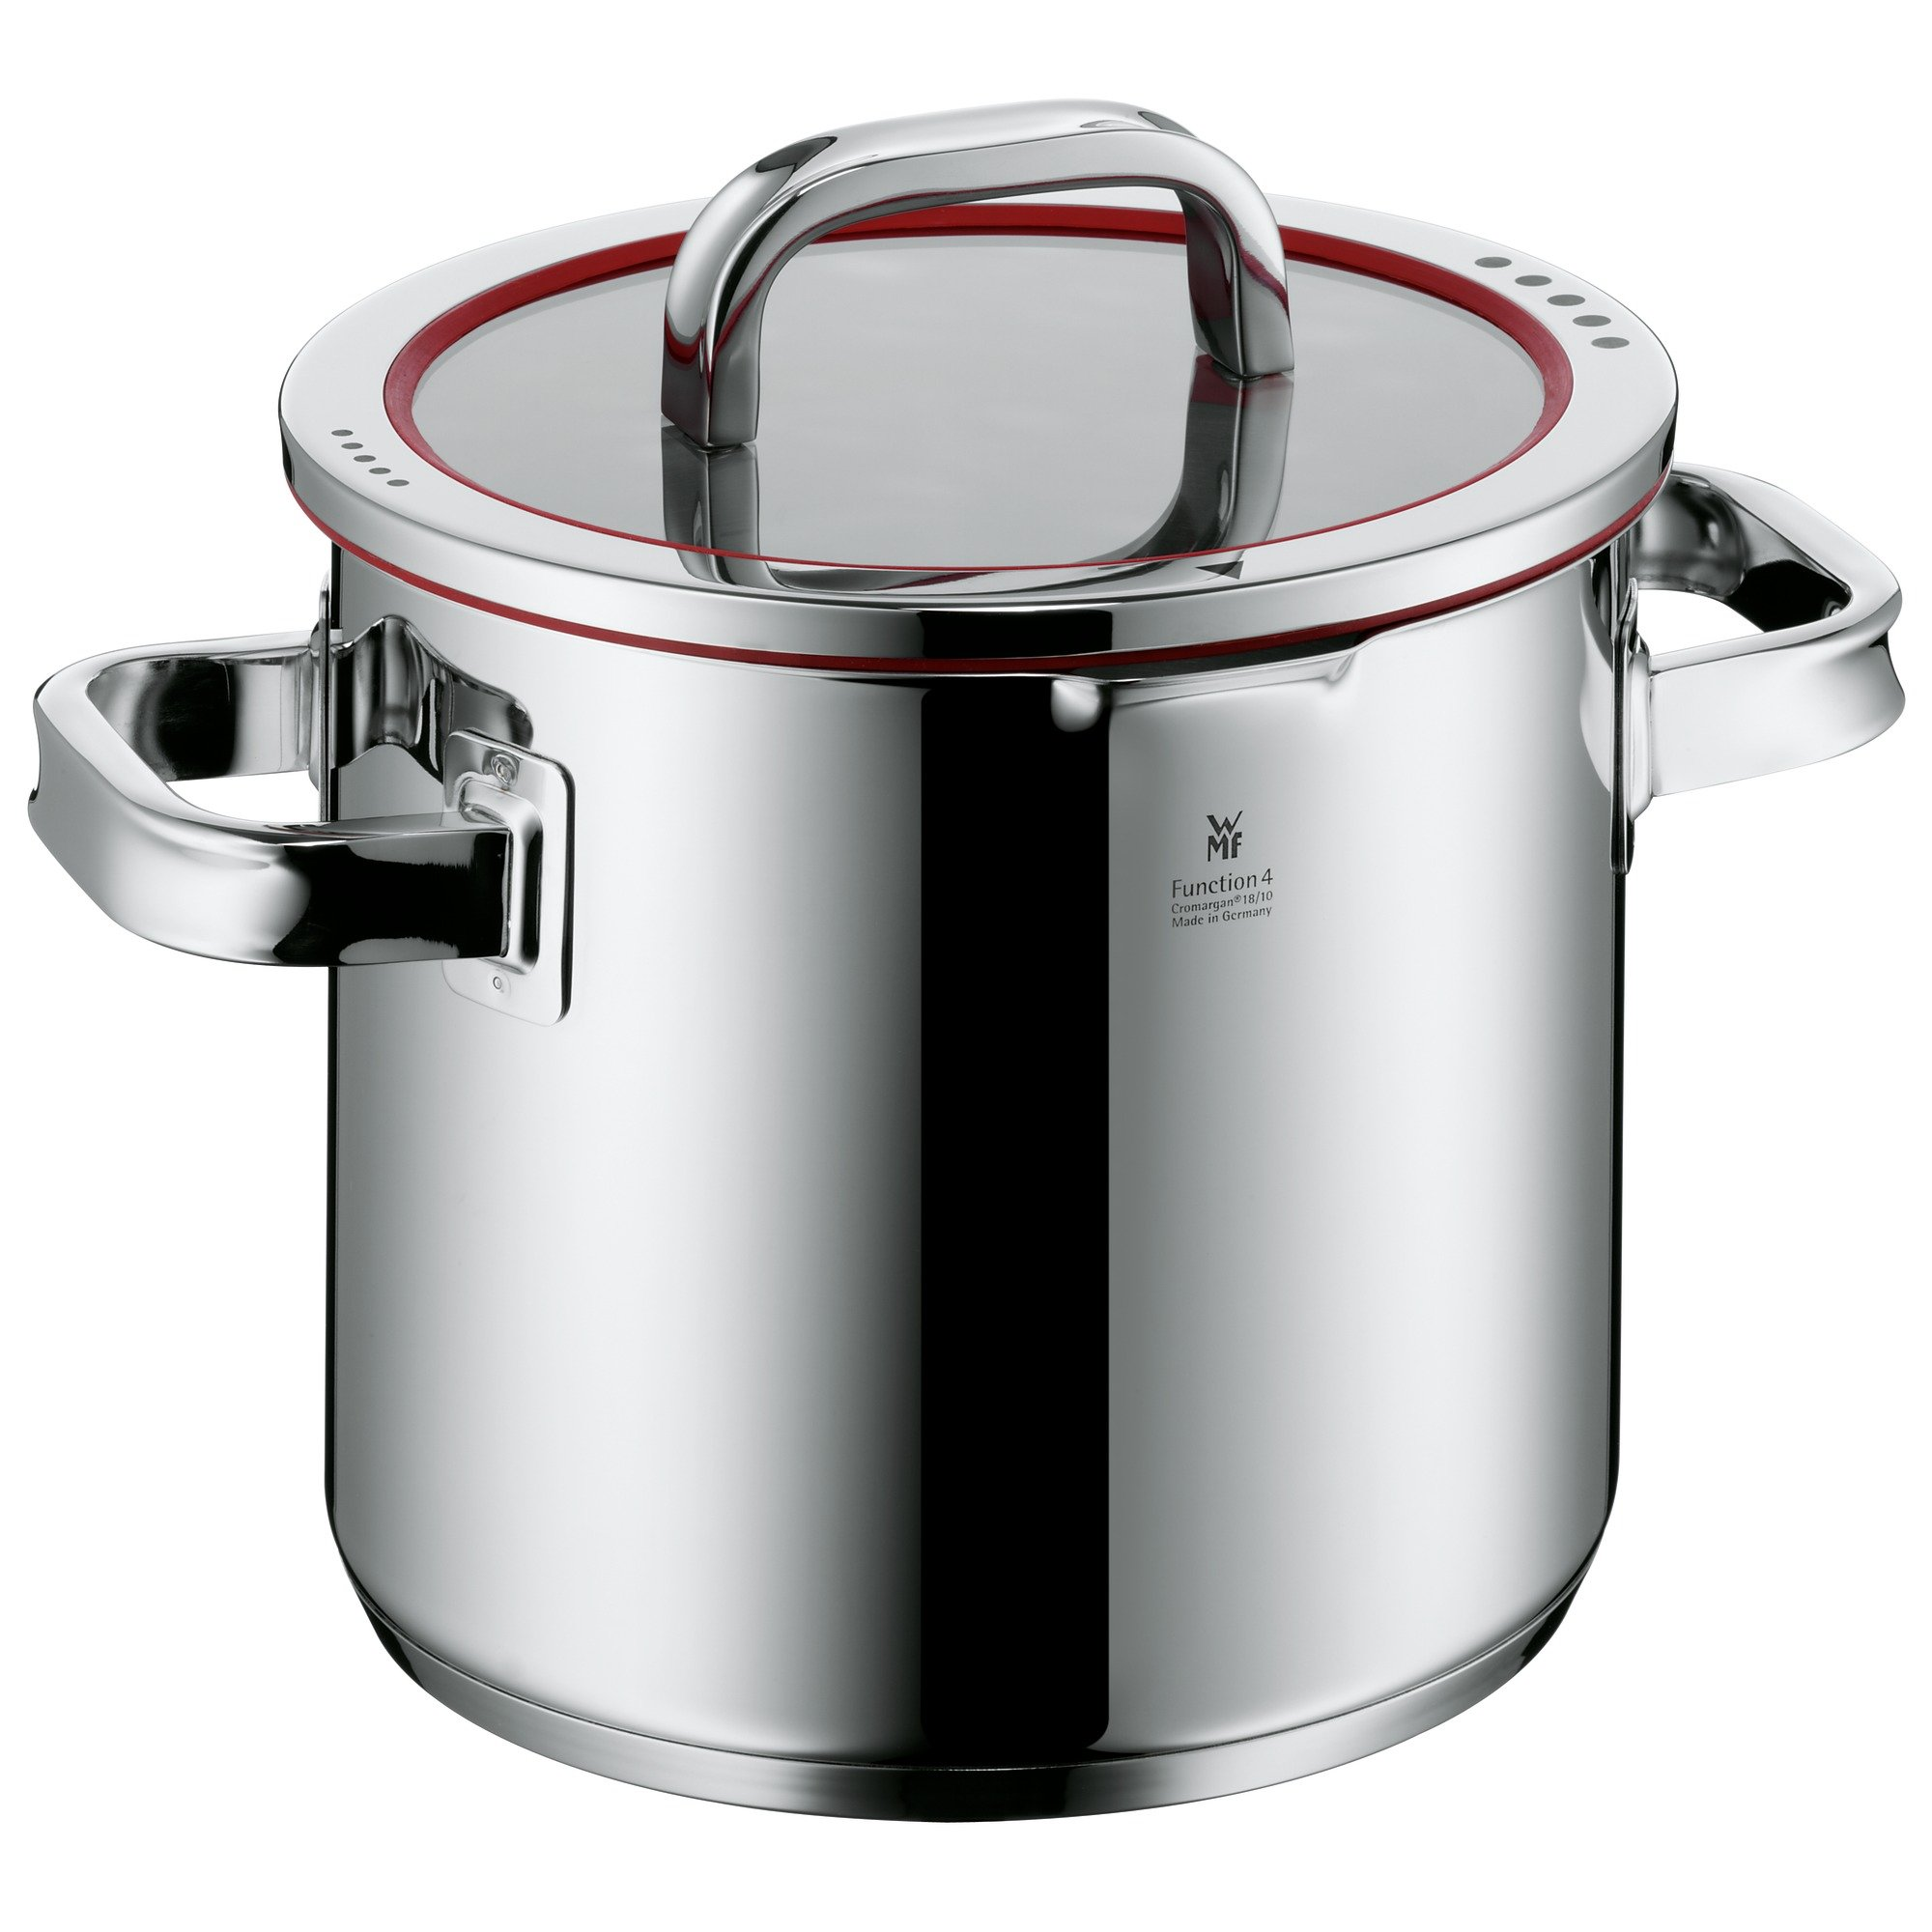 WMF Function 4 Pasta/Stock Pot with Lid, 5-Quart